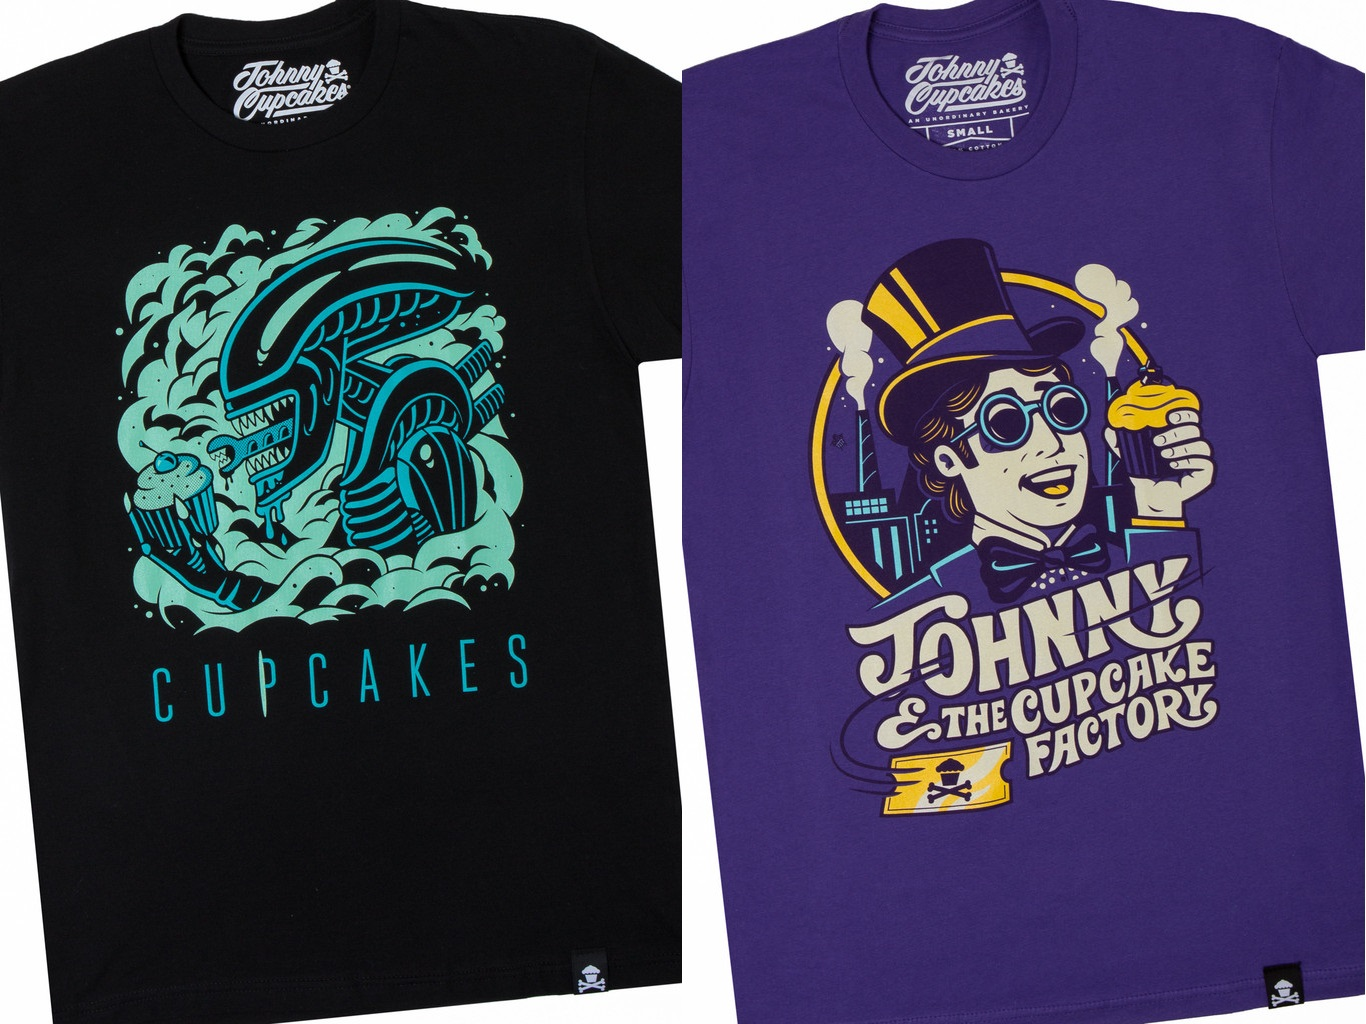 The Blot Says New Johnny Cupcakes Movie T Shirts Alien Lego Tee Cake Burster Charlie And Chocolate Factory Cupcake